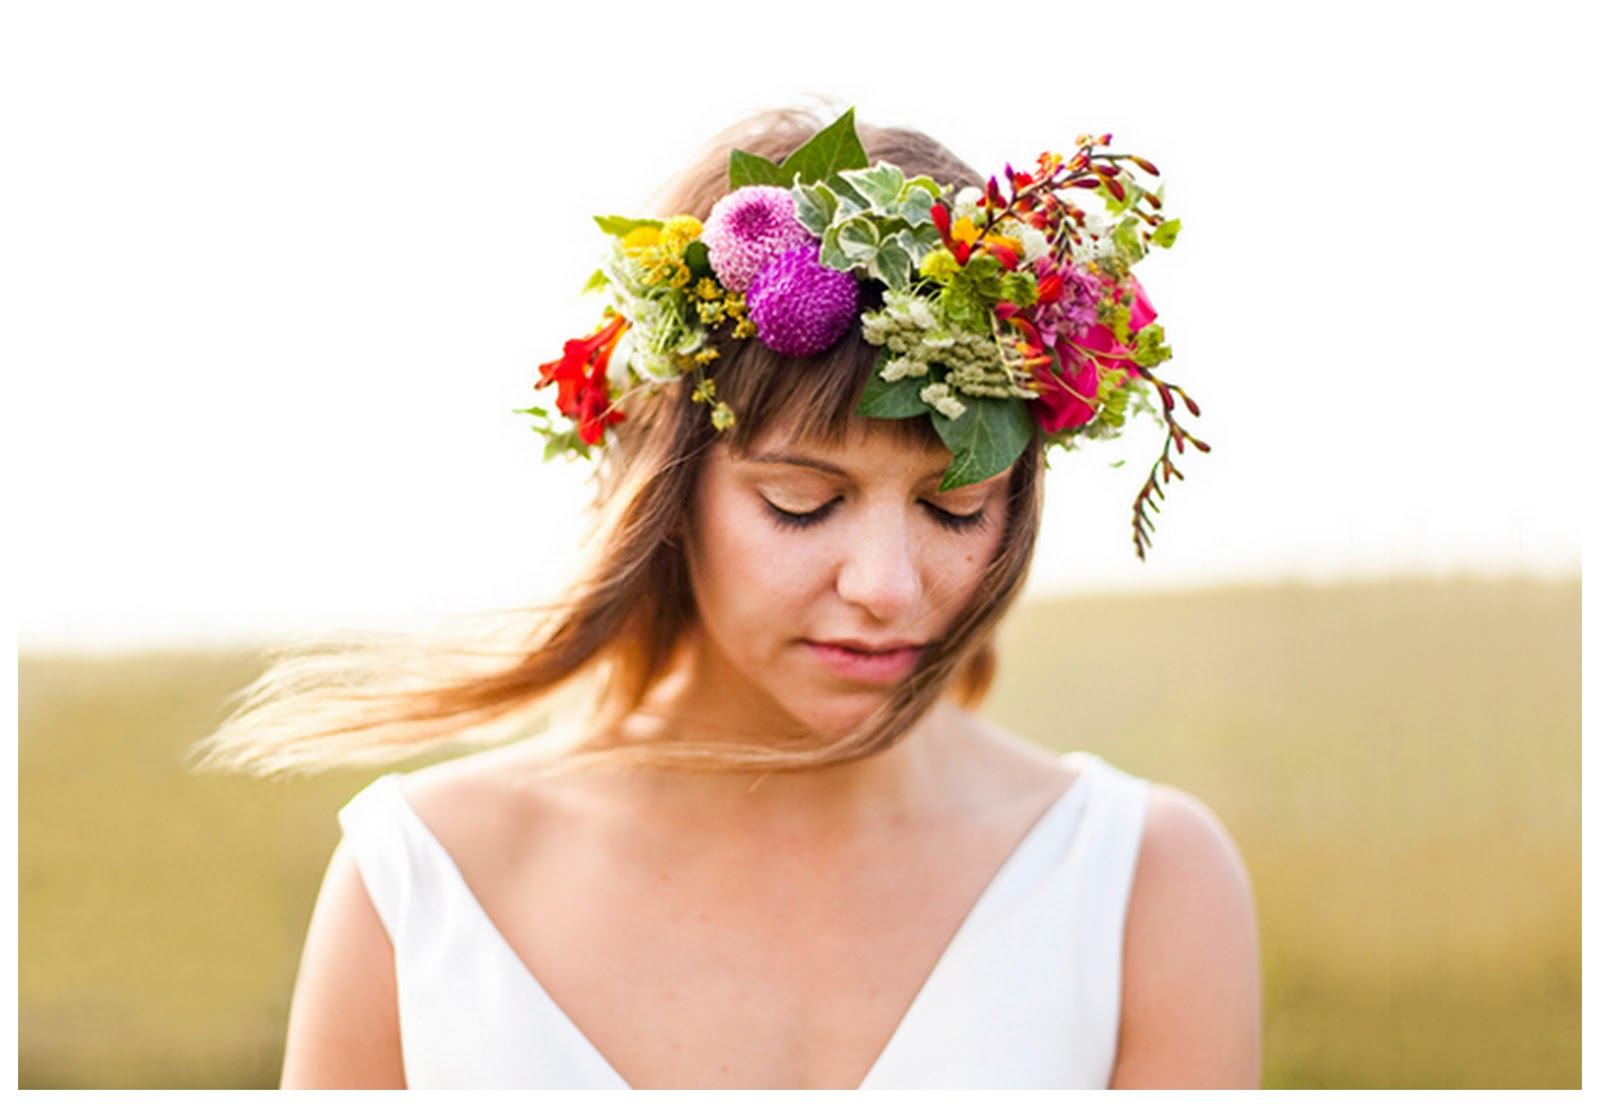 Flower crown crafthubs wedding blog uk wedding ideas before the big day izmirmasajfo Images